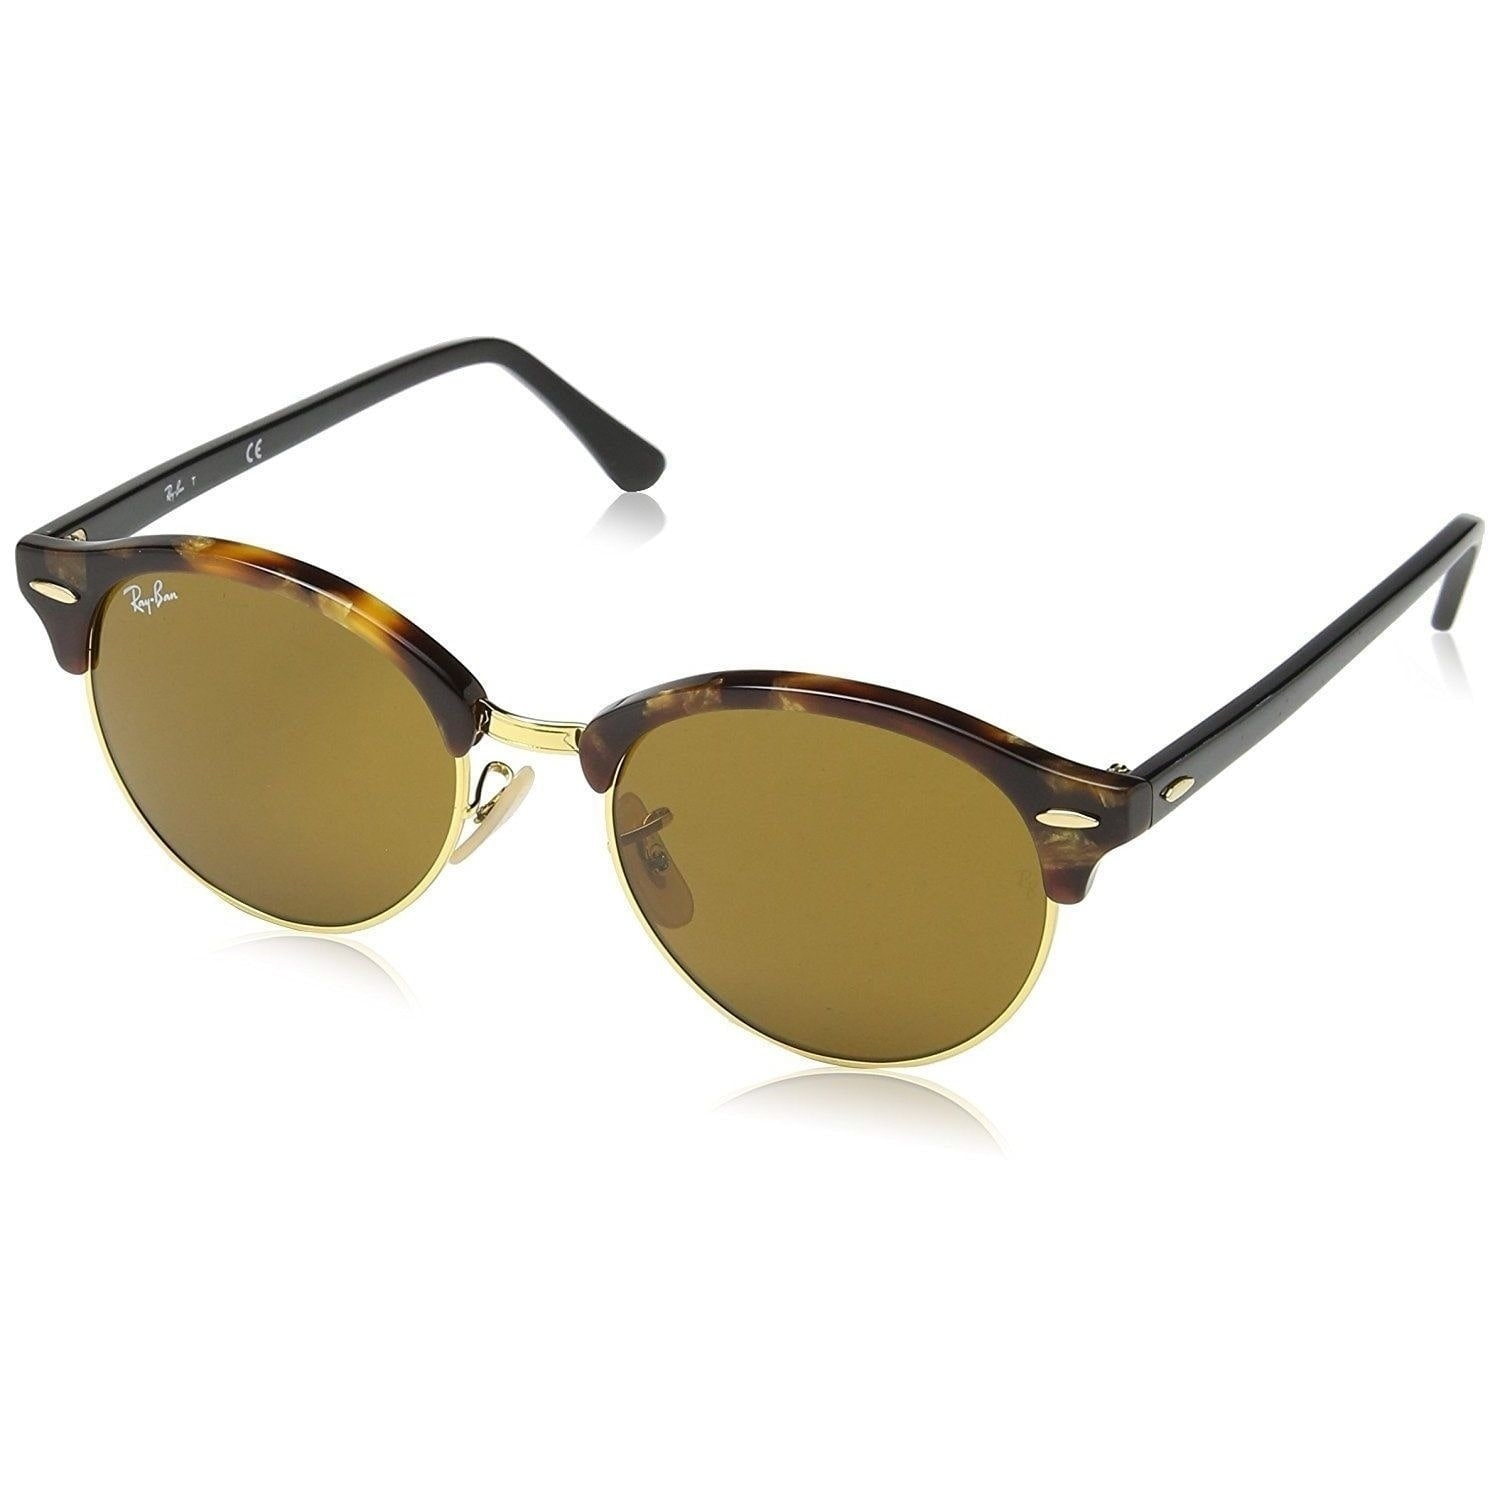 15bda0aef704d Shop Ray-Ban Clubround RB4246 1160 Unisex Tortoise Black Frame Brown  Classic 51mm Lens Sunglasses - Ships To Canada - Overstock - 15297158